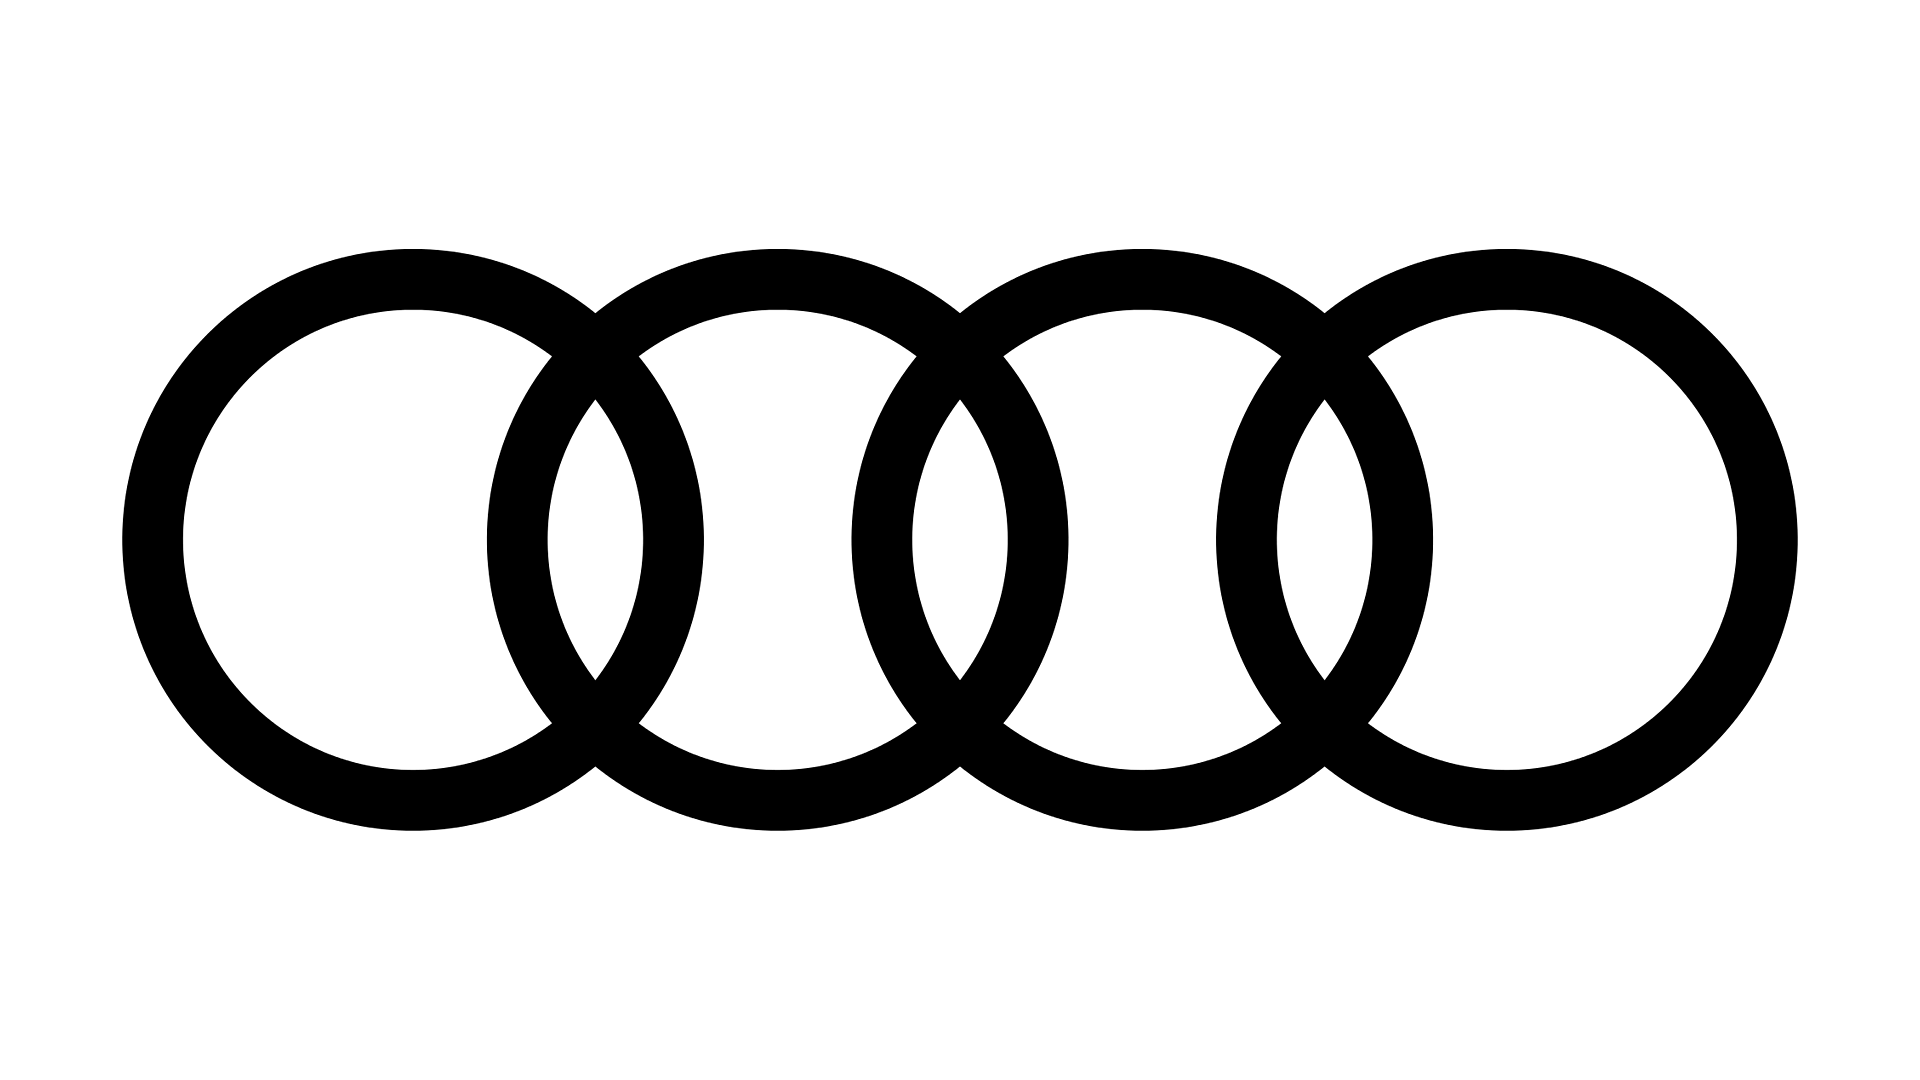 Audi Logo, Audi Symbol, Meaning, History and Evolution